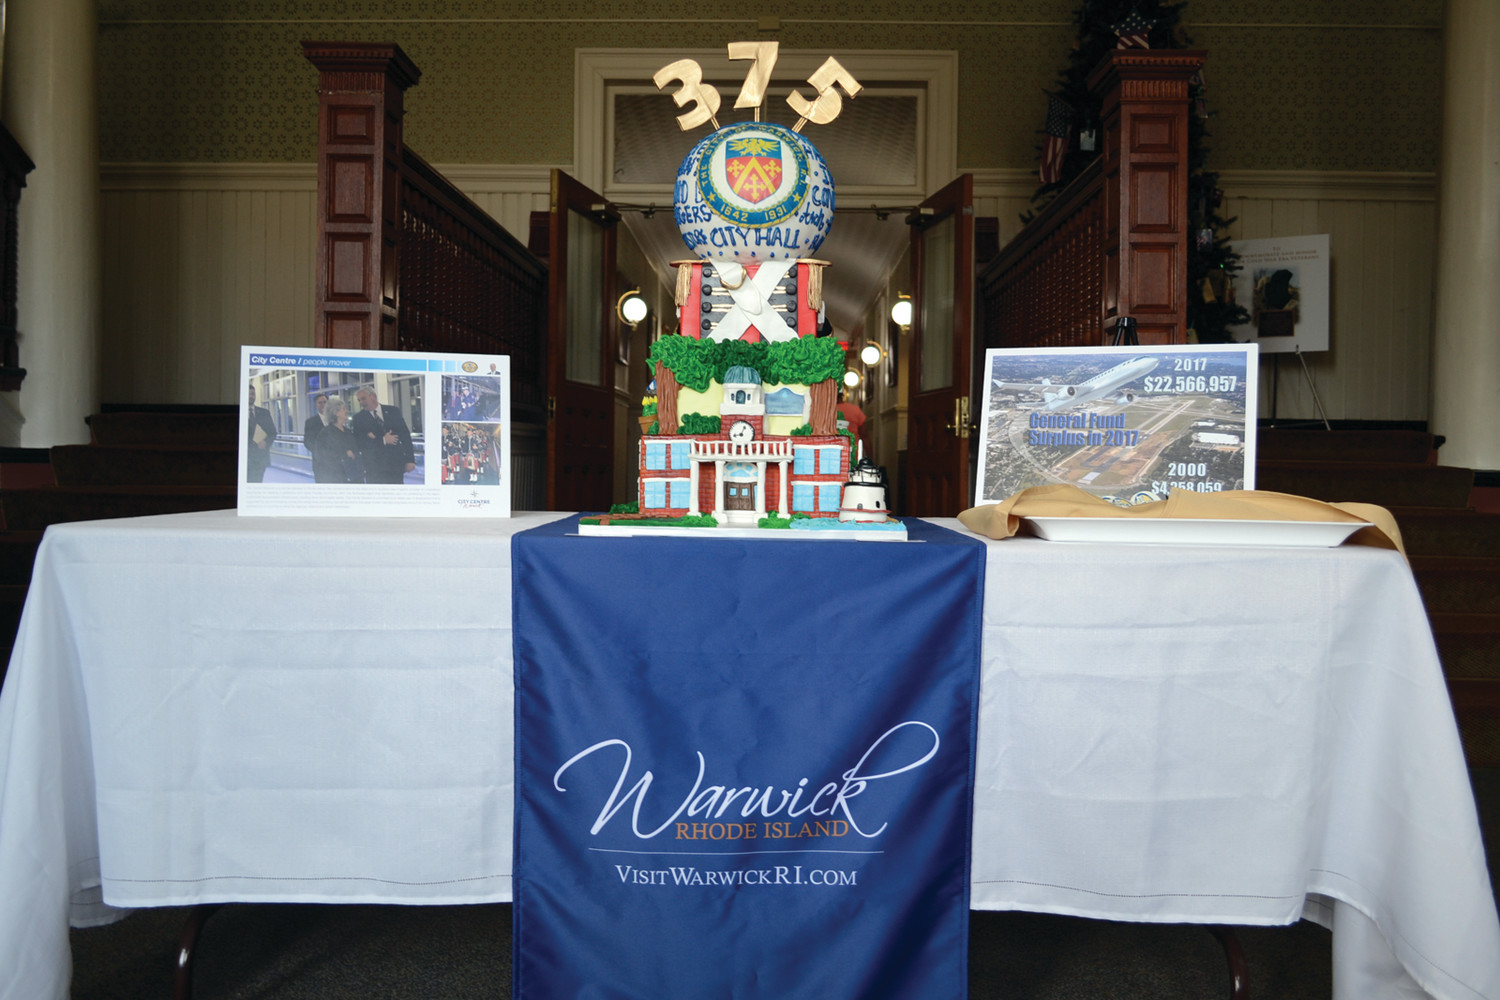 TIME CAPSULE CAKE: A specially-decorated cake from A Piece of Cake highlighted all the major themes of Warwick as part of a celebration of Mayor Scott Avedisian's 18-year tenure in the city. City Hall, the Pawtuxet Rangers and Rocky Point all had homages.